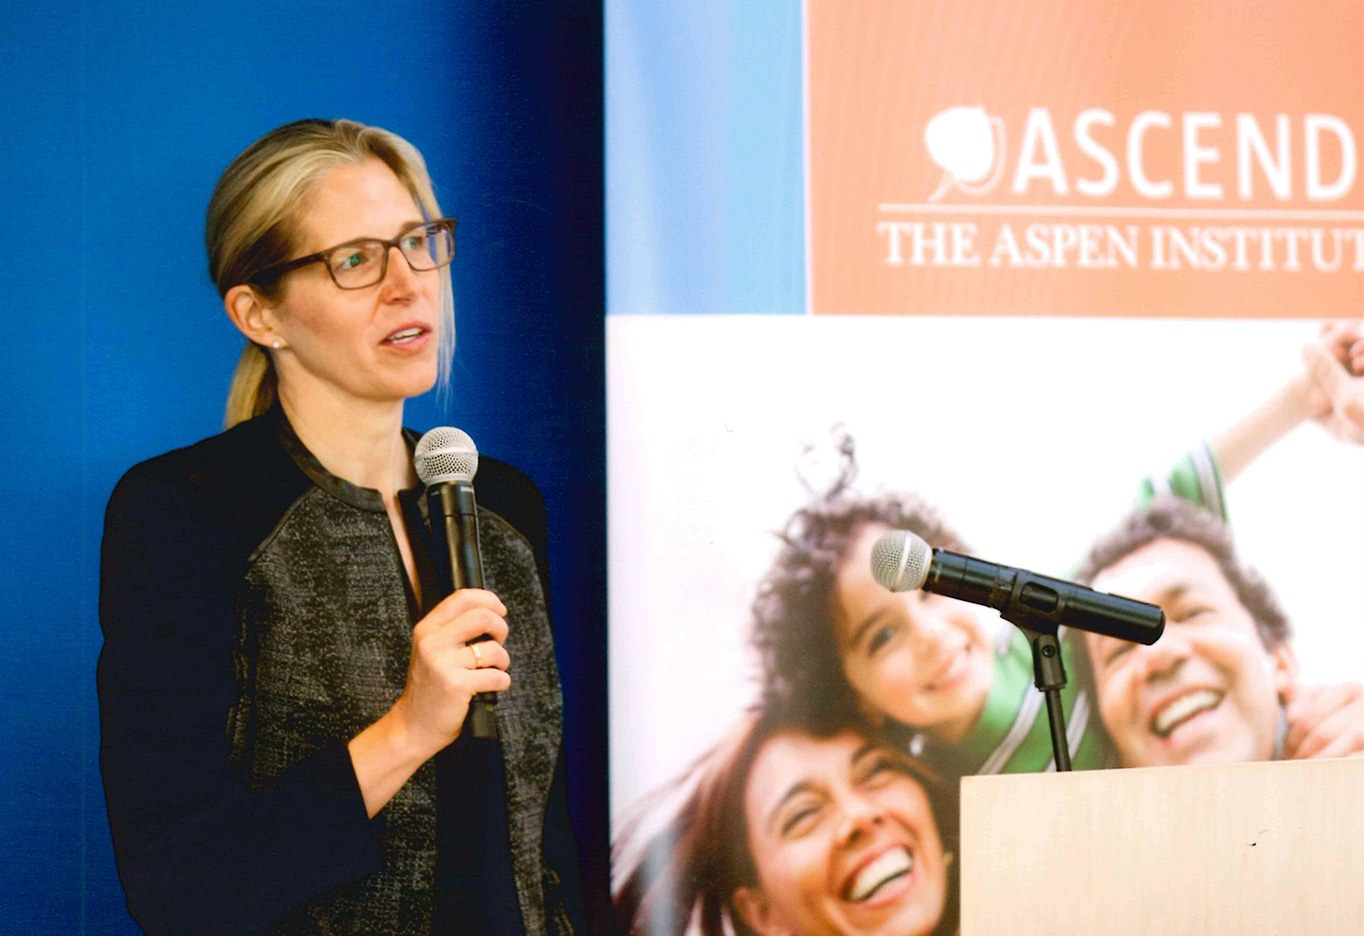 Dr. Smith addresses Ascend at the Aspen Institute event